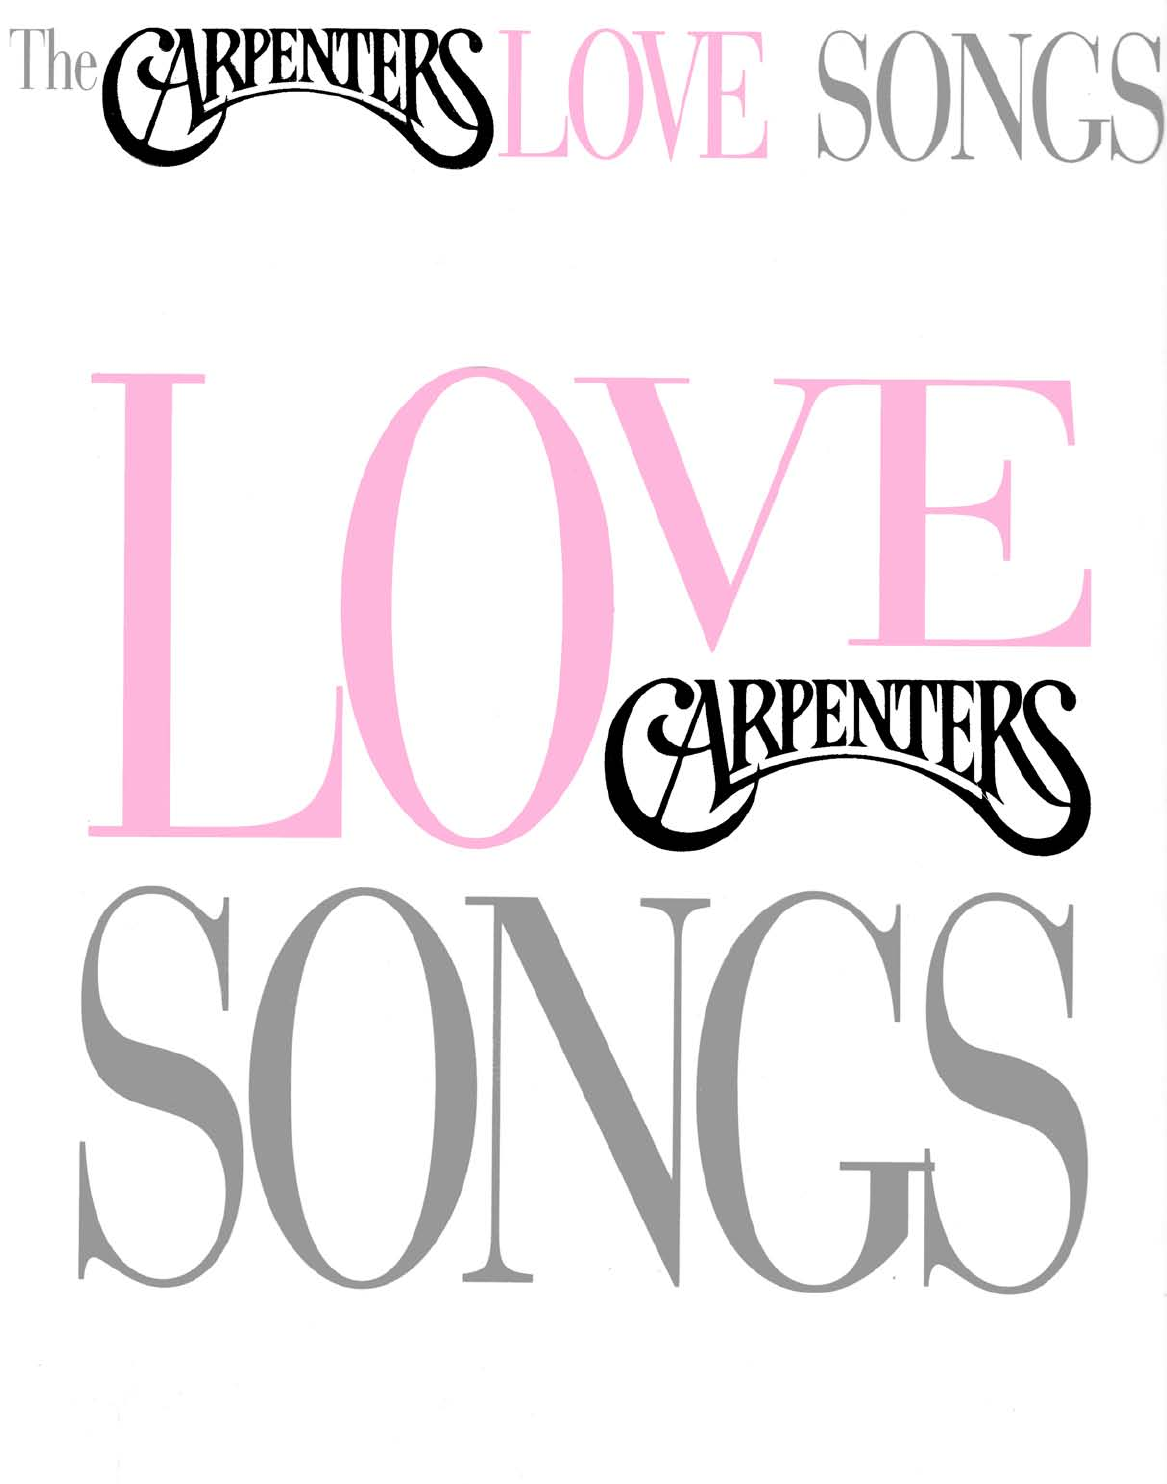 BOOK - Carpenters - Love Songs pdf